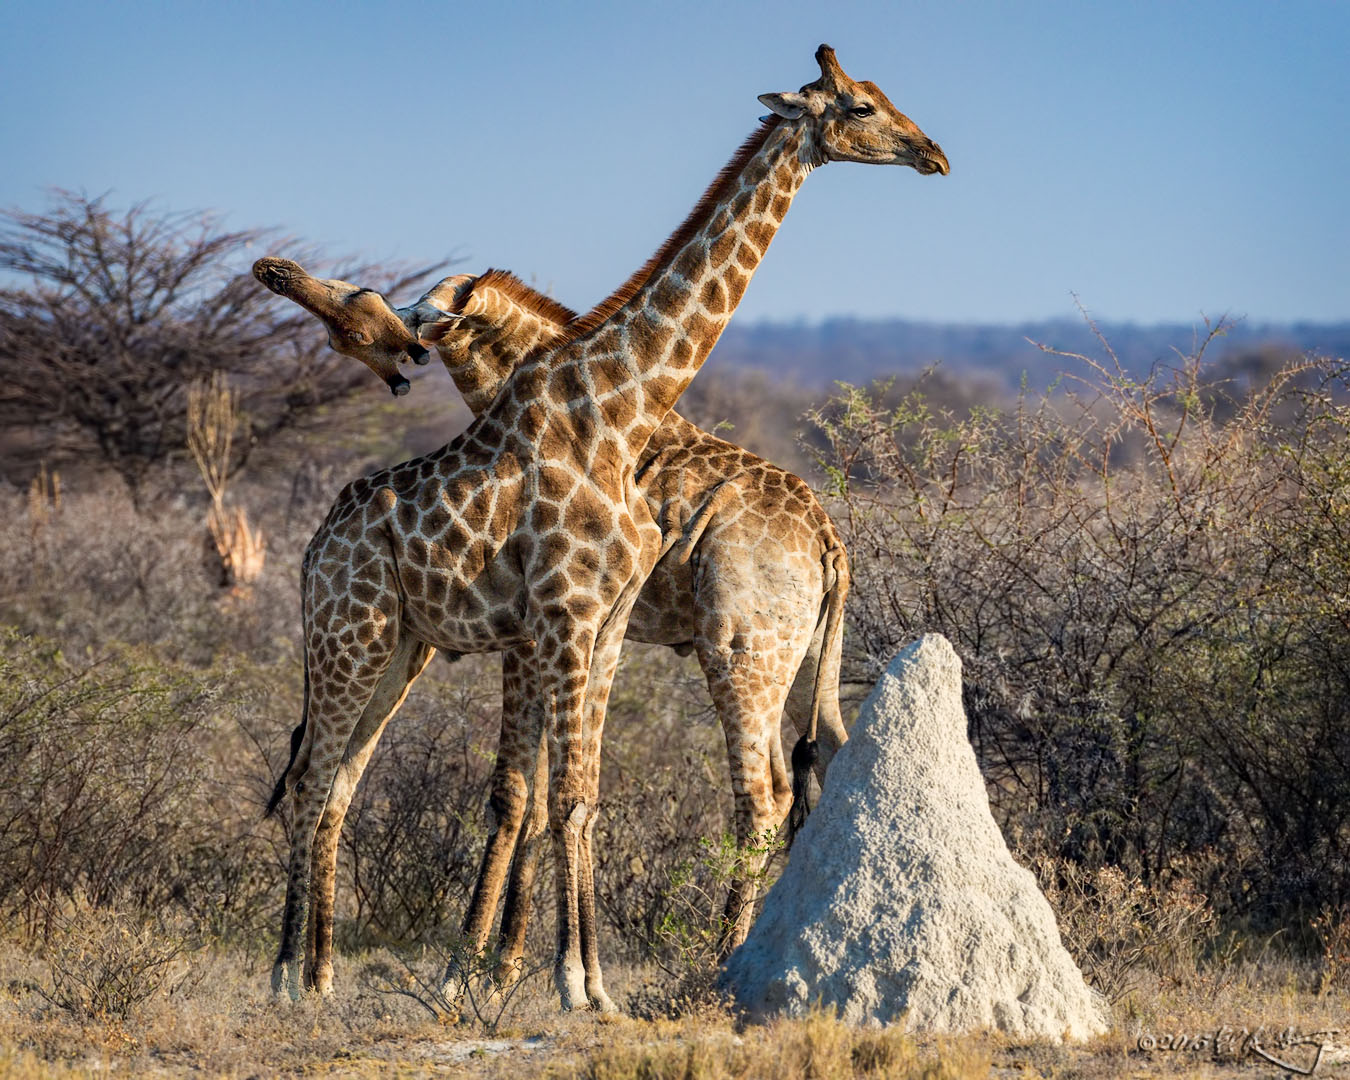 Reticulated_Giraffe_males_fighting_2